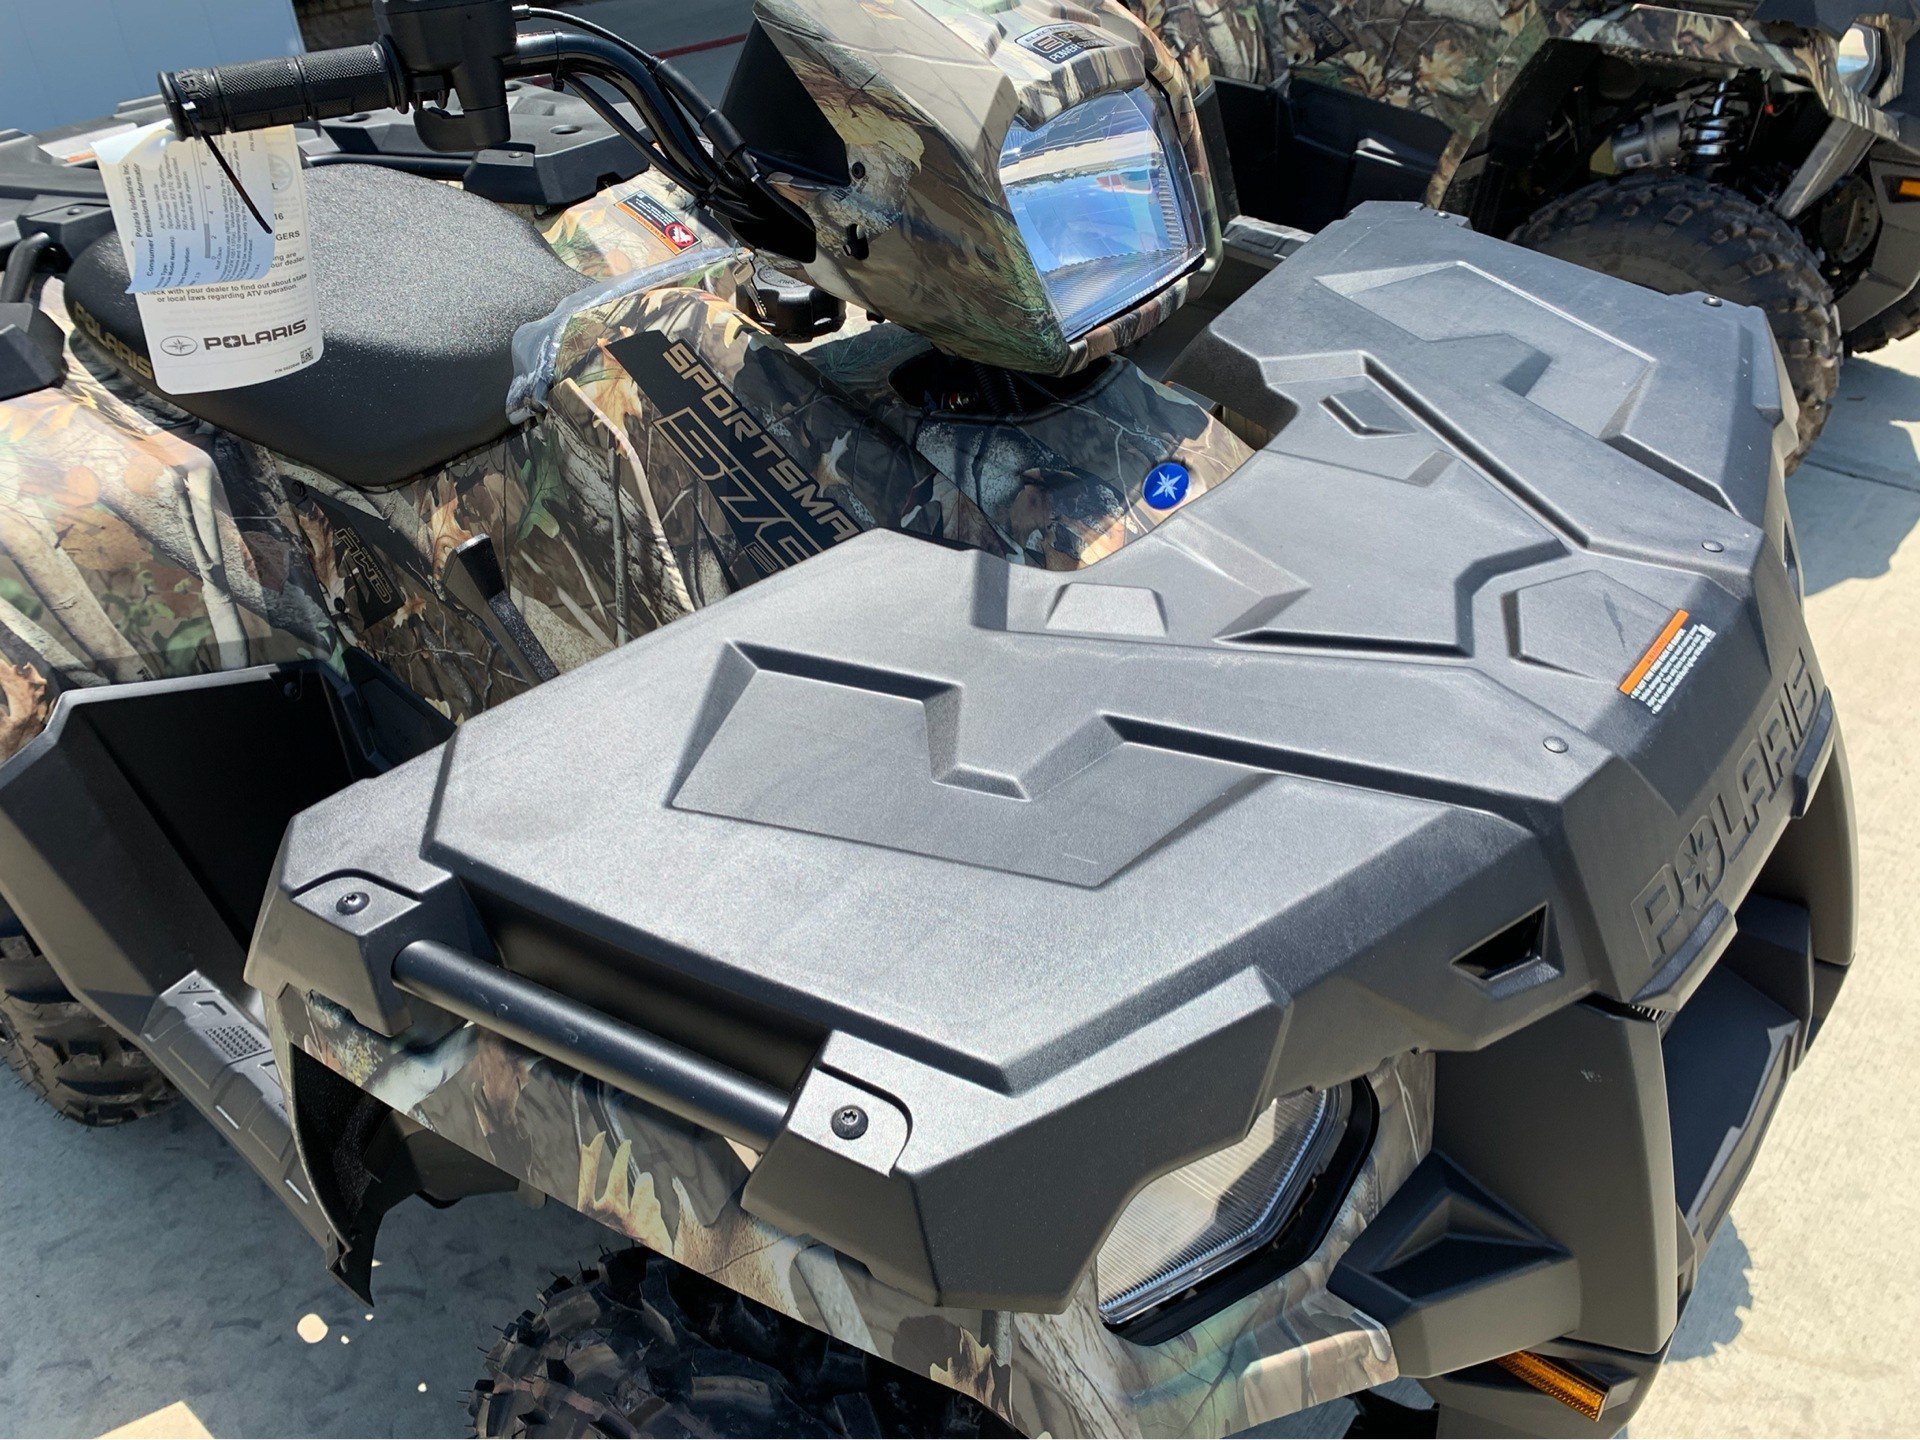 2018 Polaris Sportsman 570 EPS Camo in Marshall, Texas - Photo 7